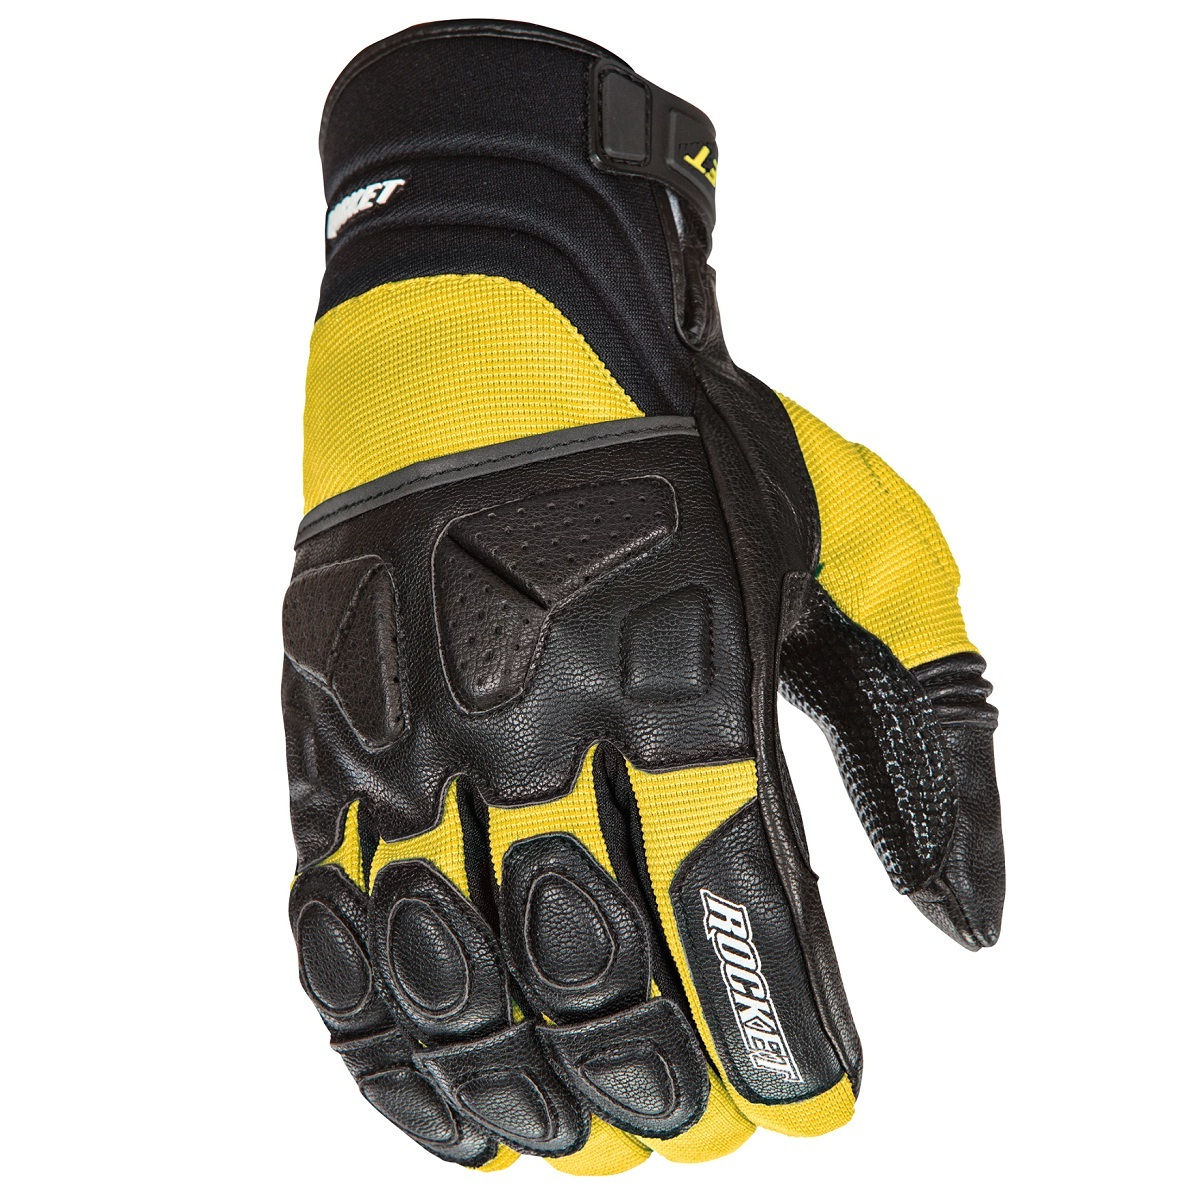 Joe Rocket Atomic X Mens Yellow/Black Leather Motorcycle Gloves